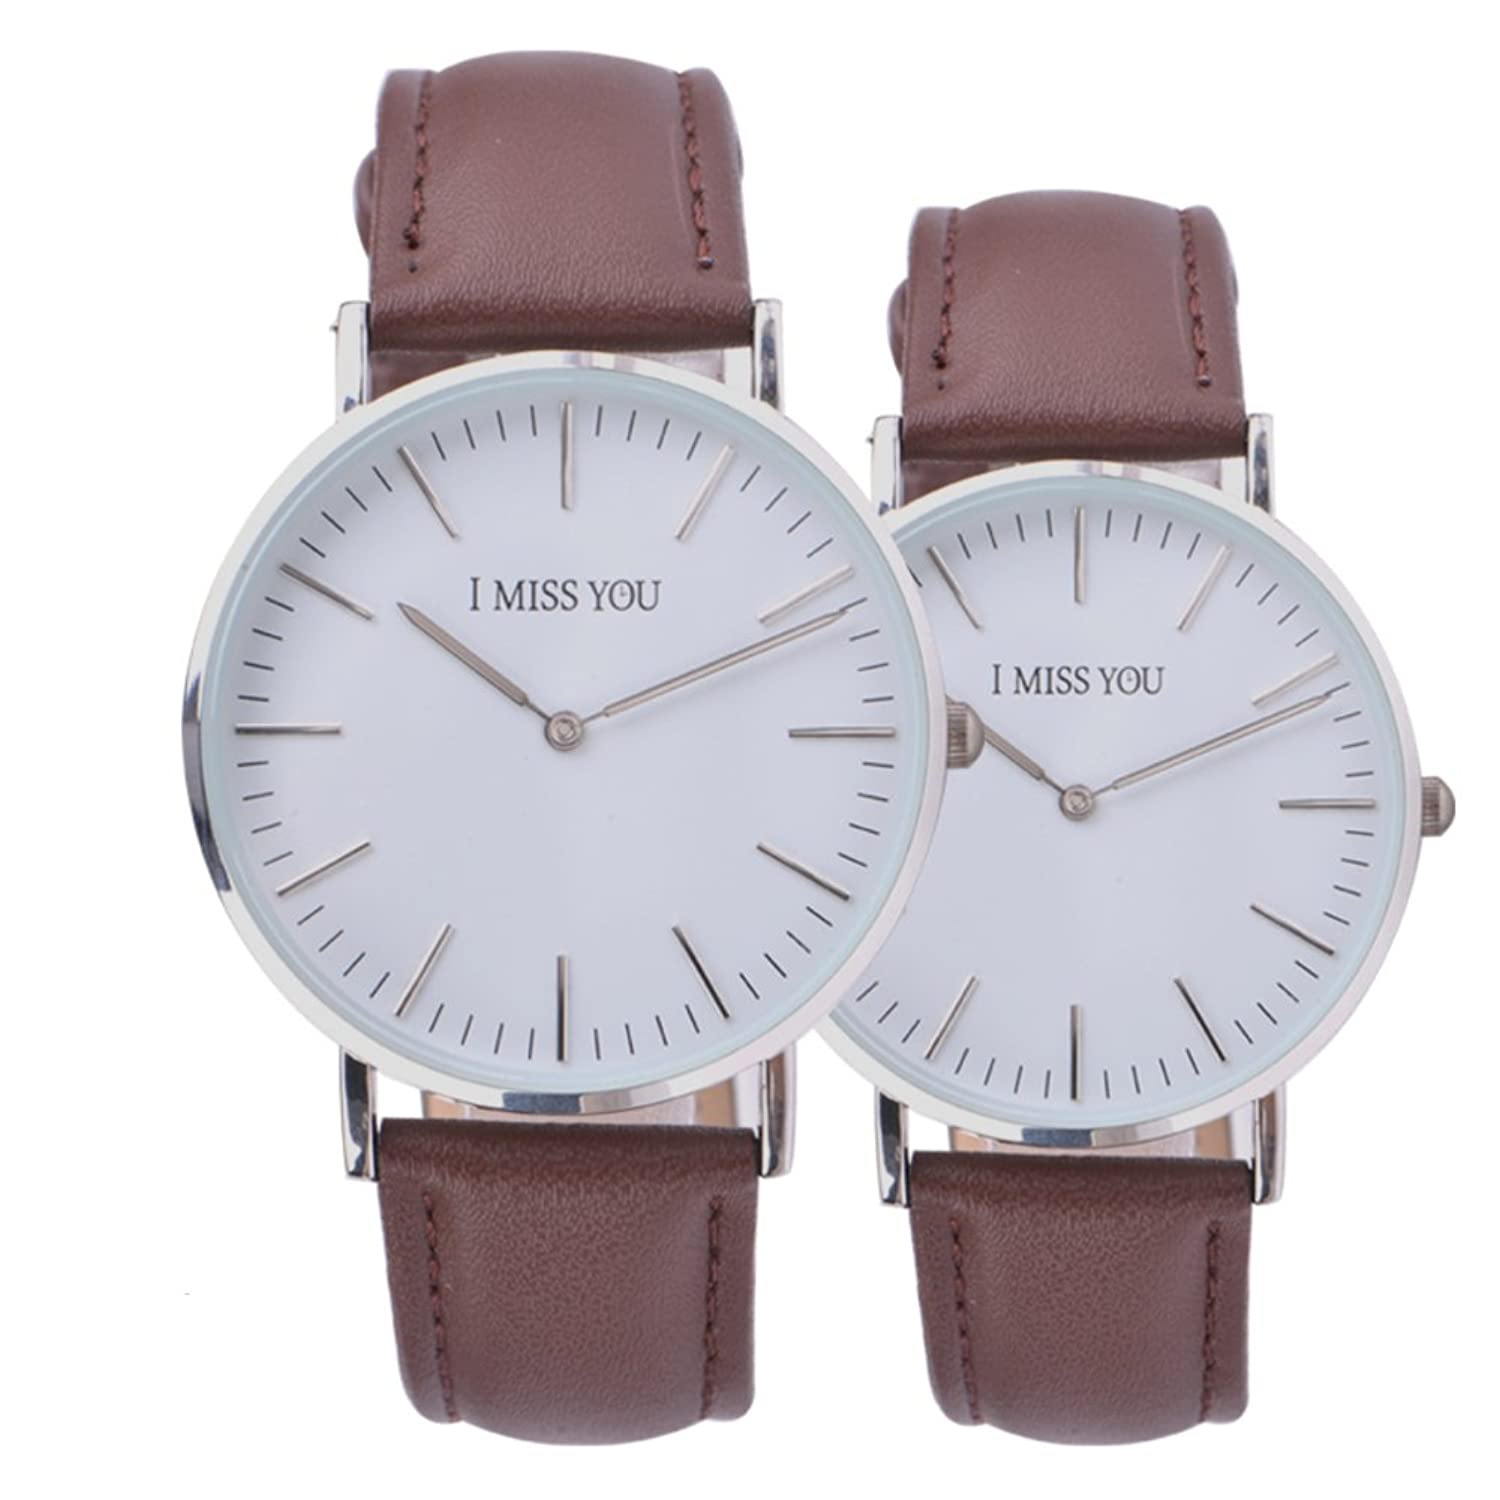 Couple Watches /超薄型防水時計/ Simpleクォーツwatch-d B06XJLCMHF